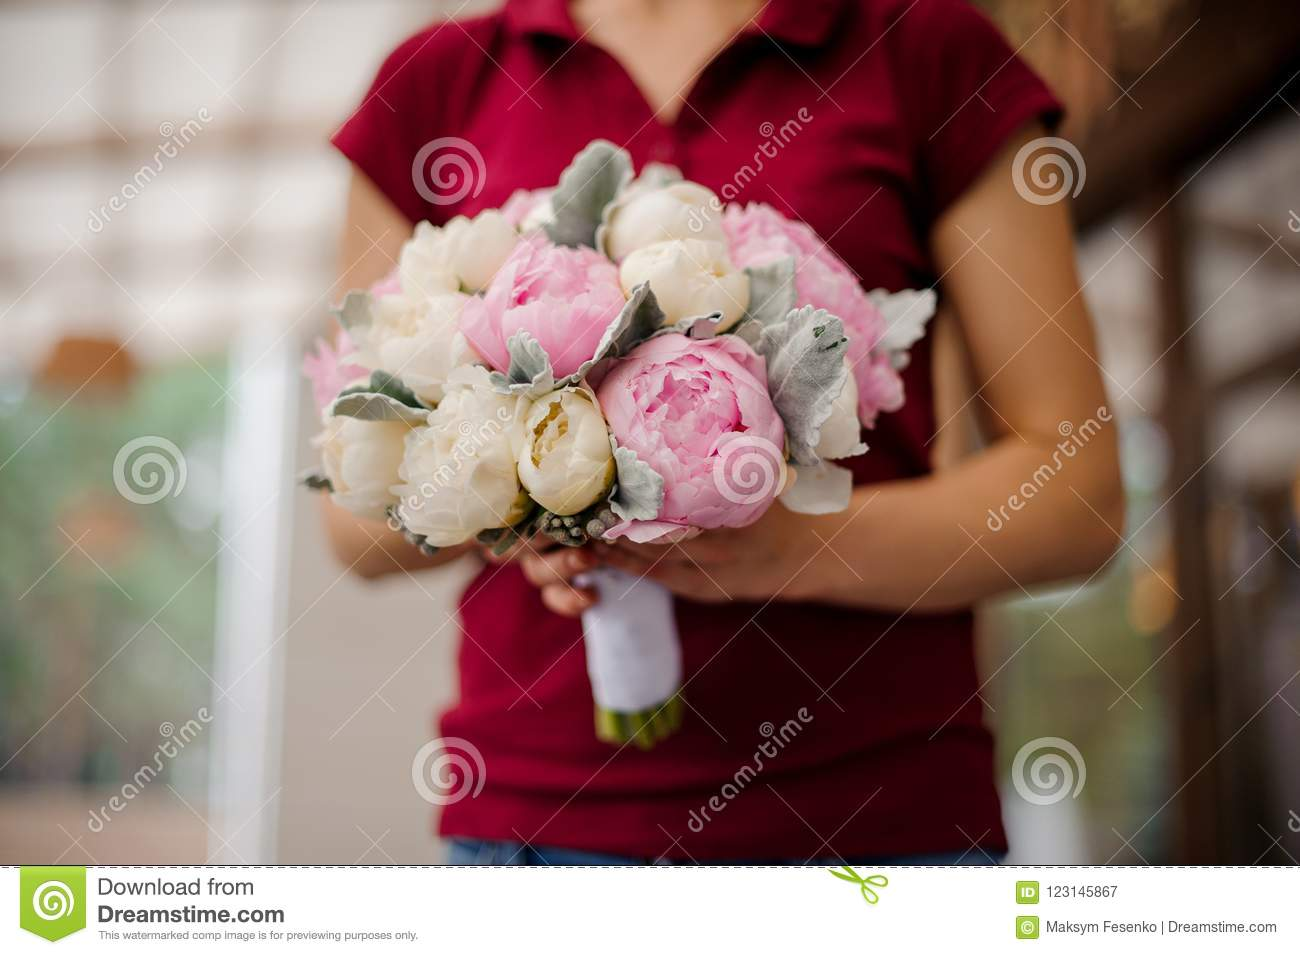 Girl holding bouquet of rose and champagne color peonies